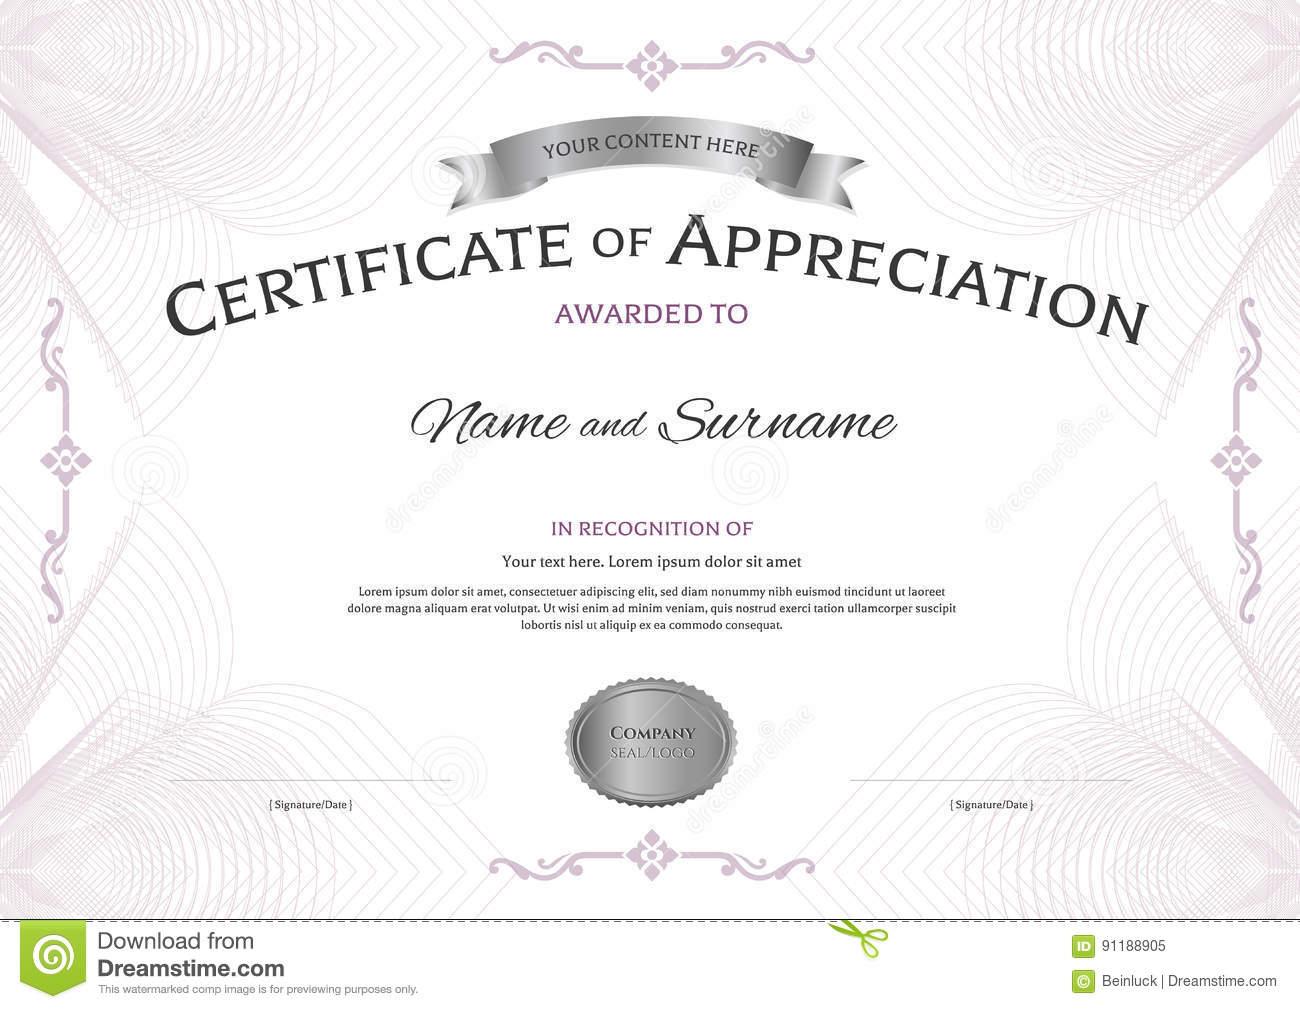 Certificate of appreciation template with award ribbon on abstra certificate of appreciation template with award ribbon on abstra yelopaper Choice Image